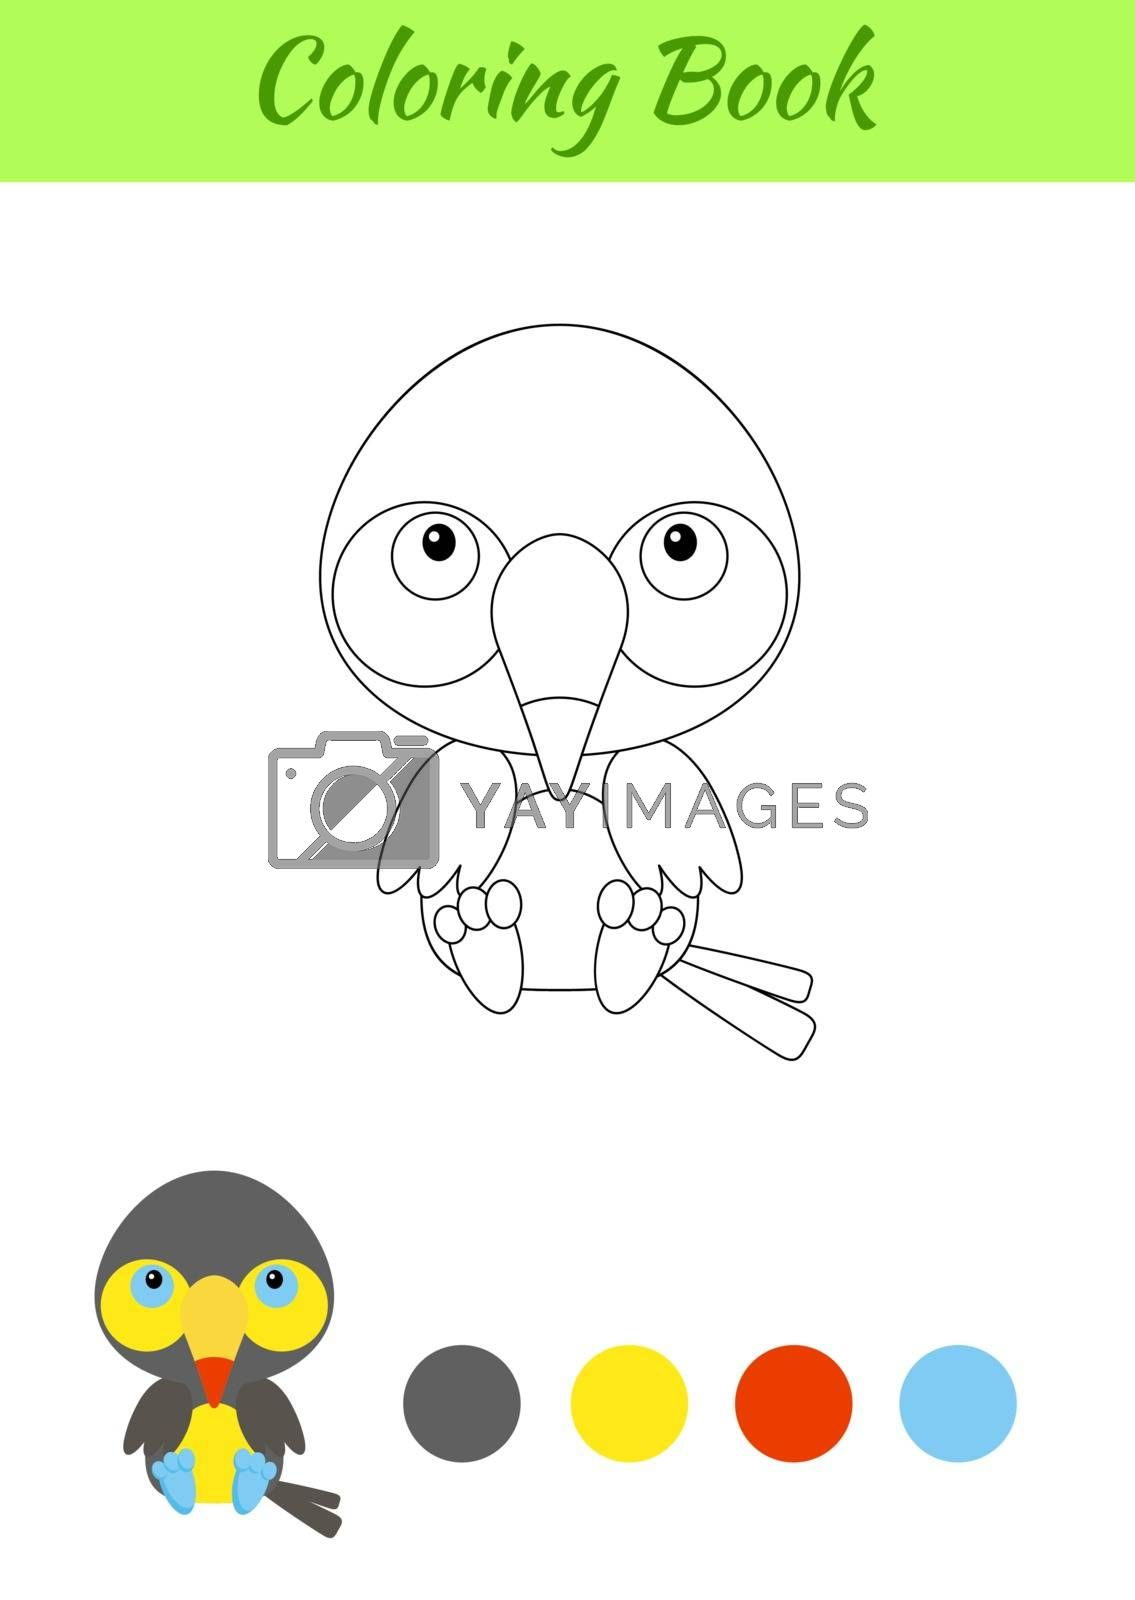 Coloring page little sitting baby toucan. Coloring book for kids by Melnyk